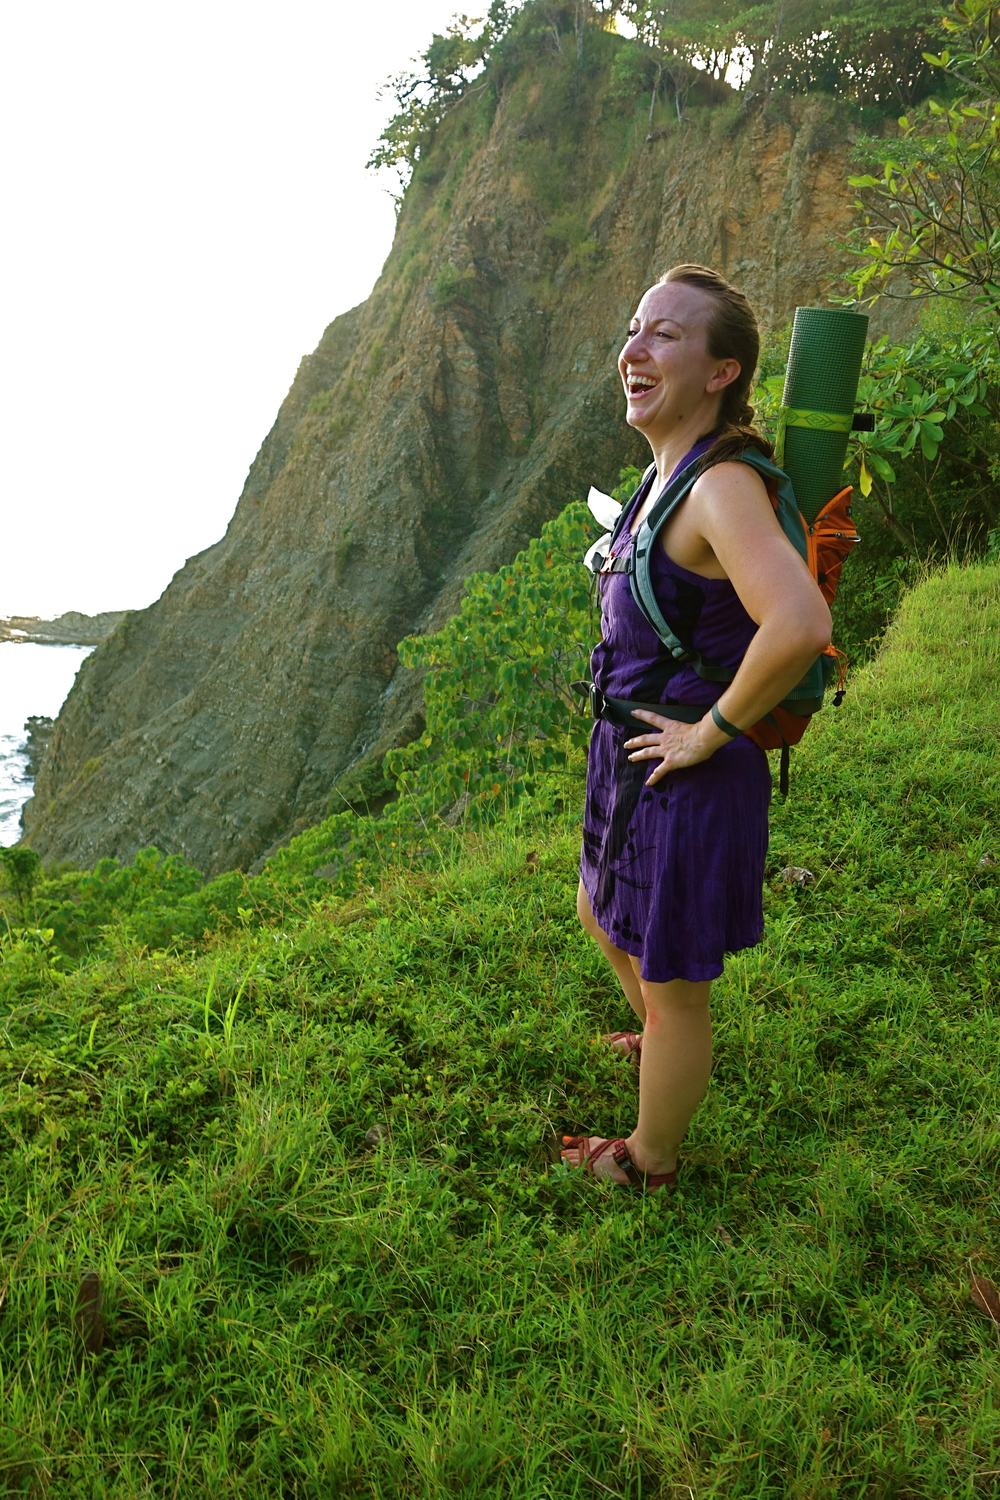 brandy laughing on a cliff.JPG